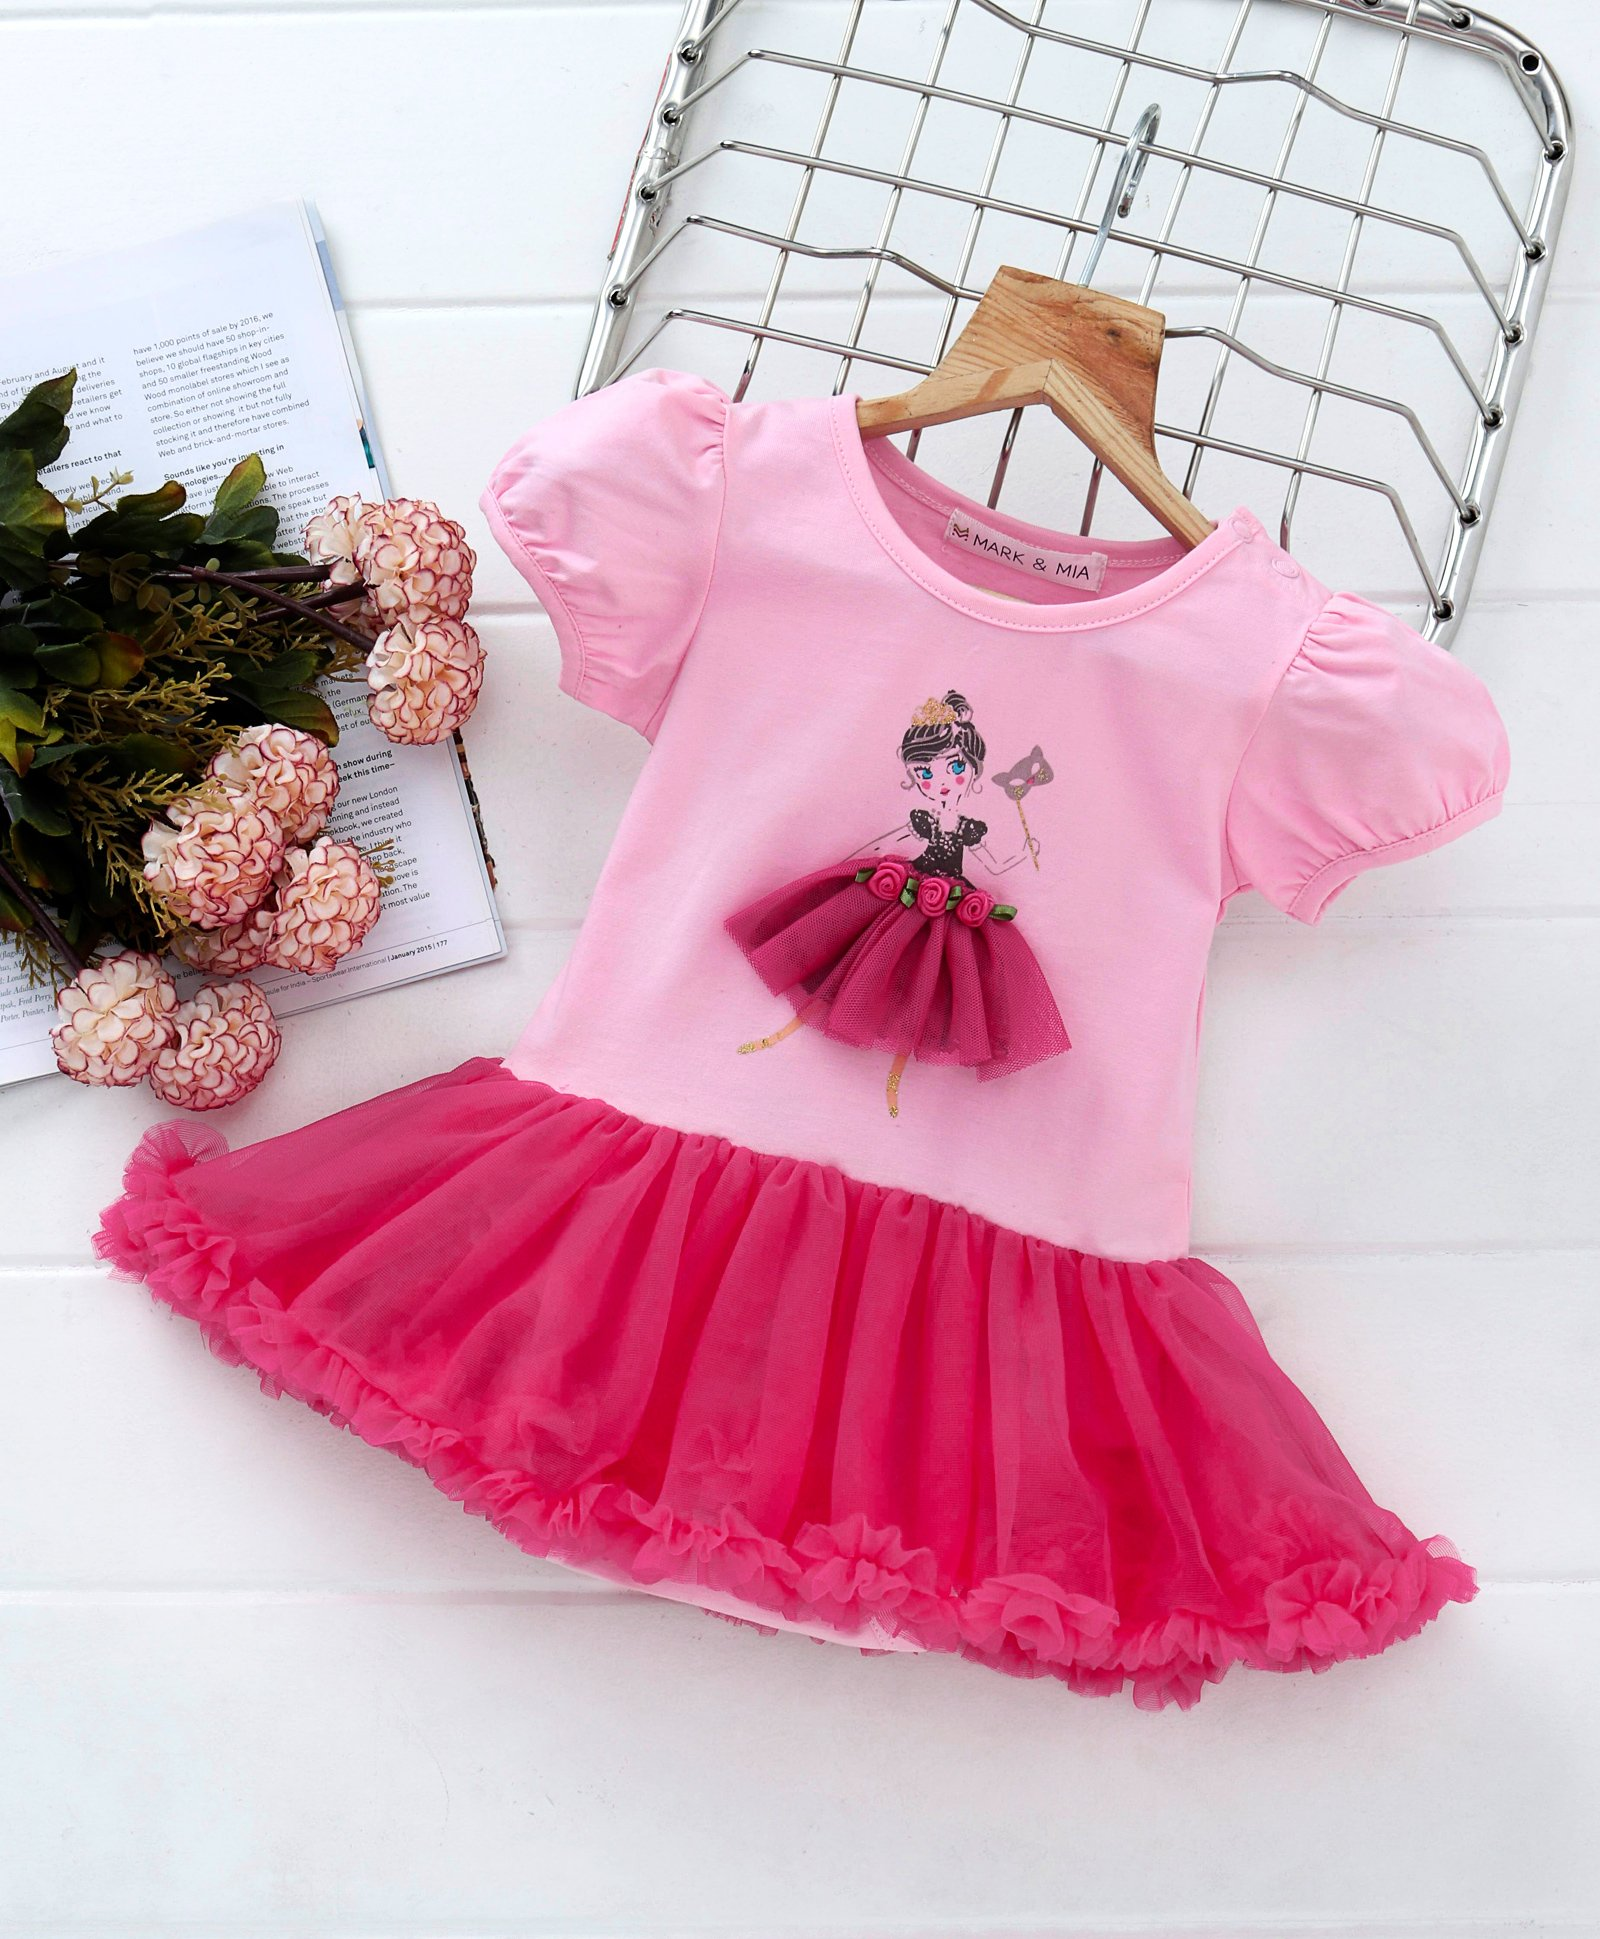 77fa7aa656979 Buy Mark & Mia Doll Print Cap Sleeves Onesie Dress Pink for Girls (6-9  Months) Online in India, Shop at FirstCry.com - 2402852